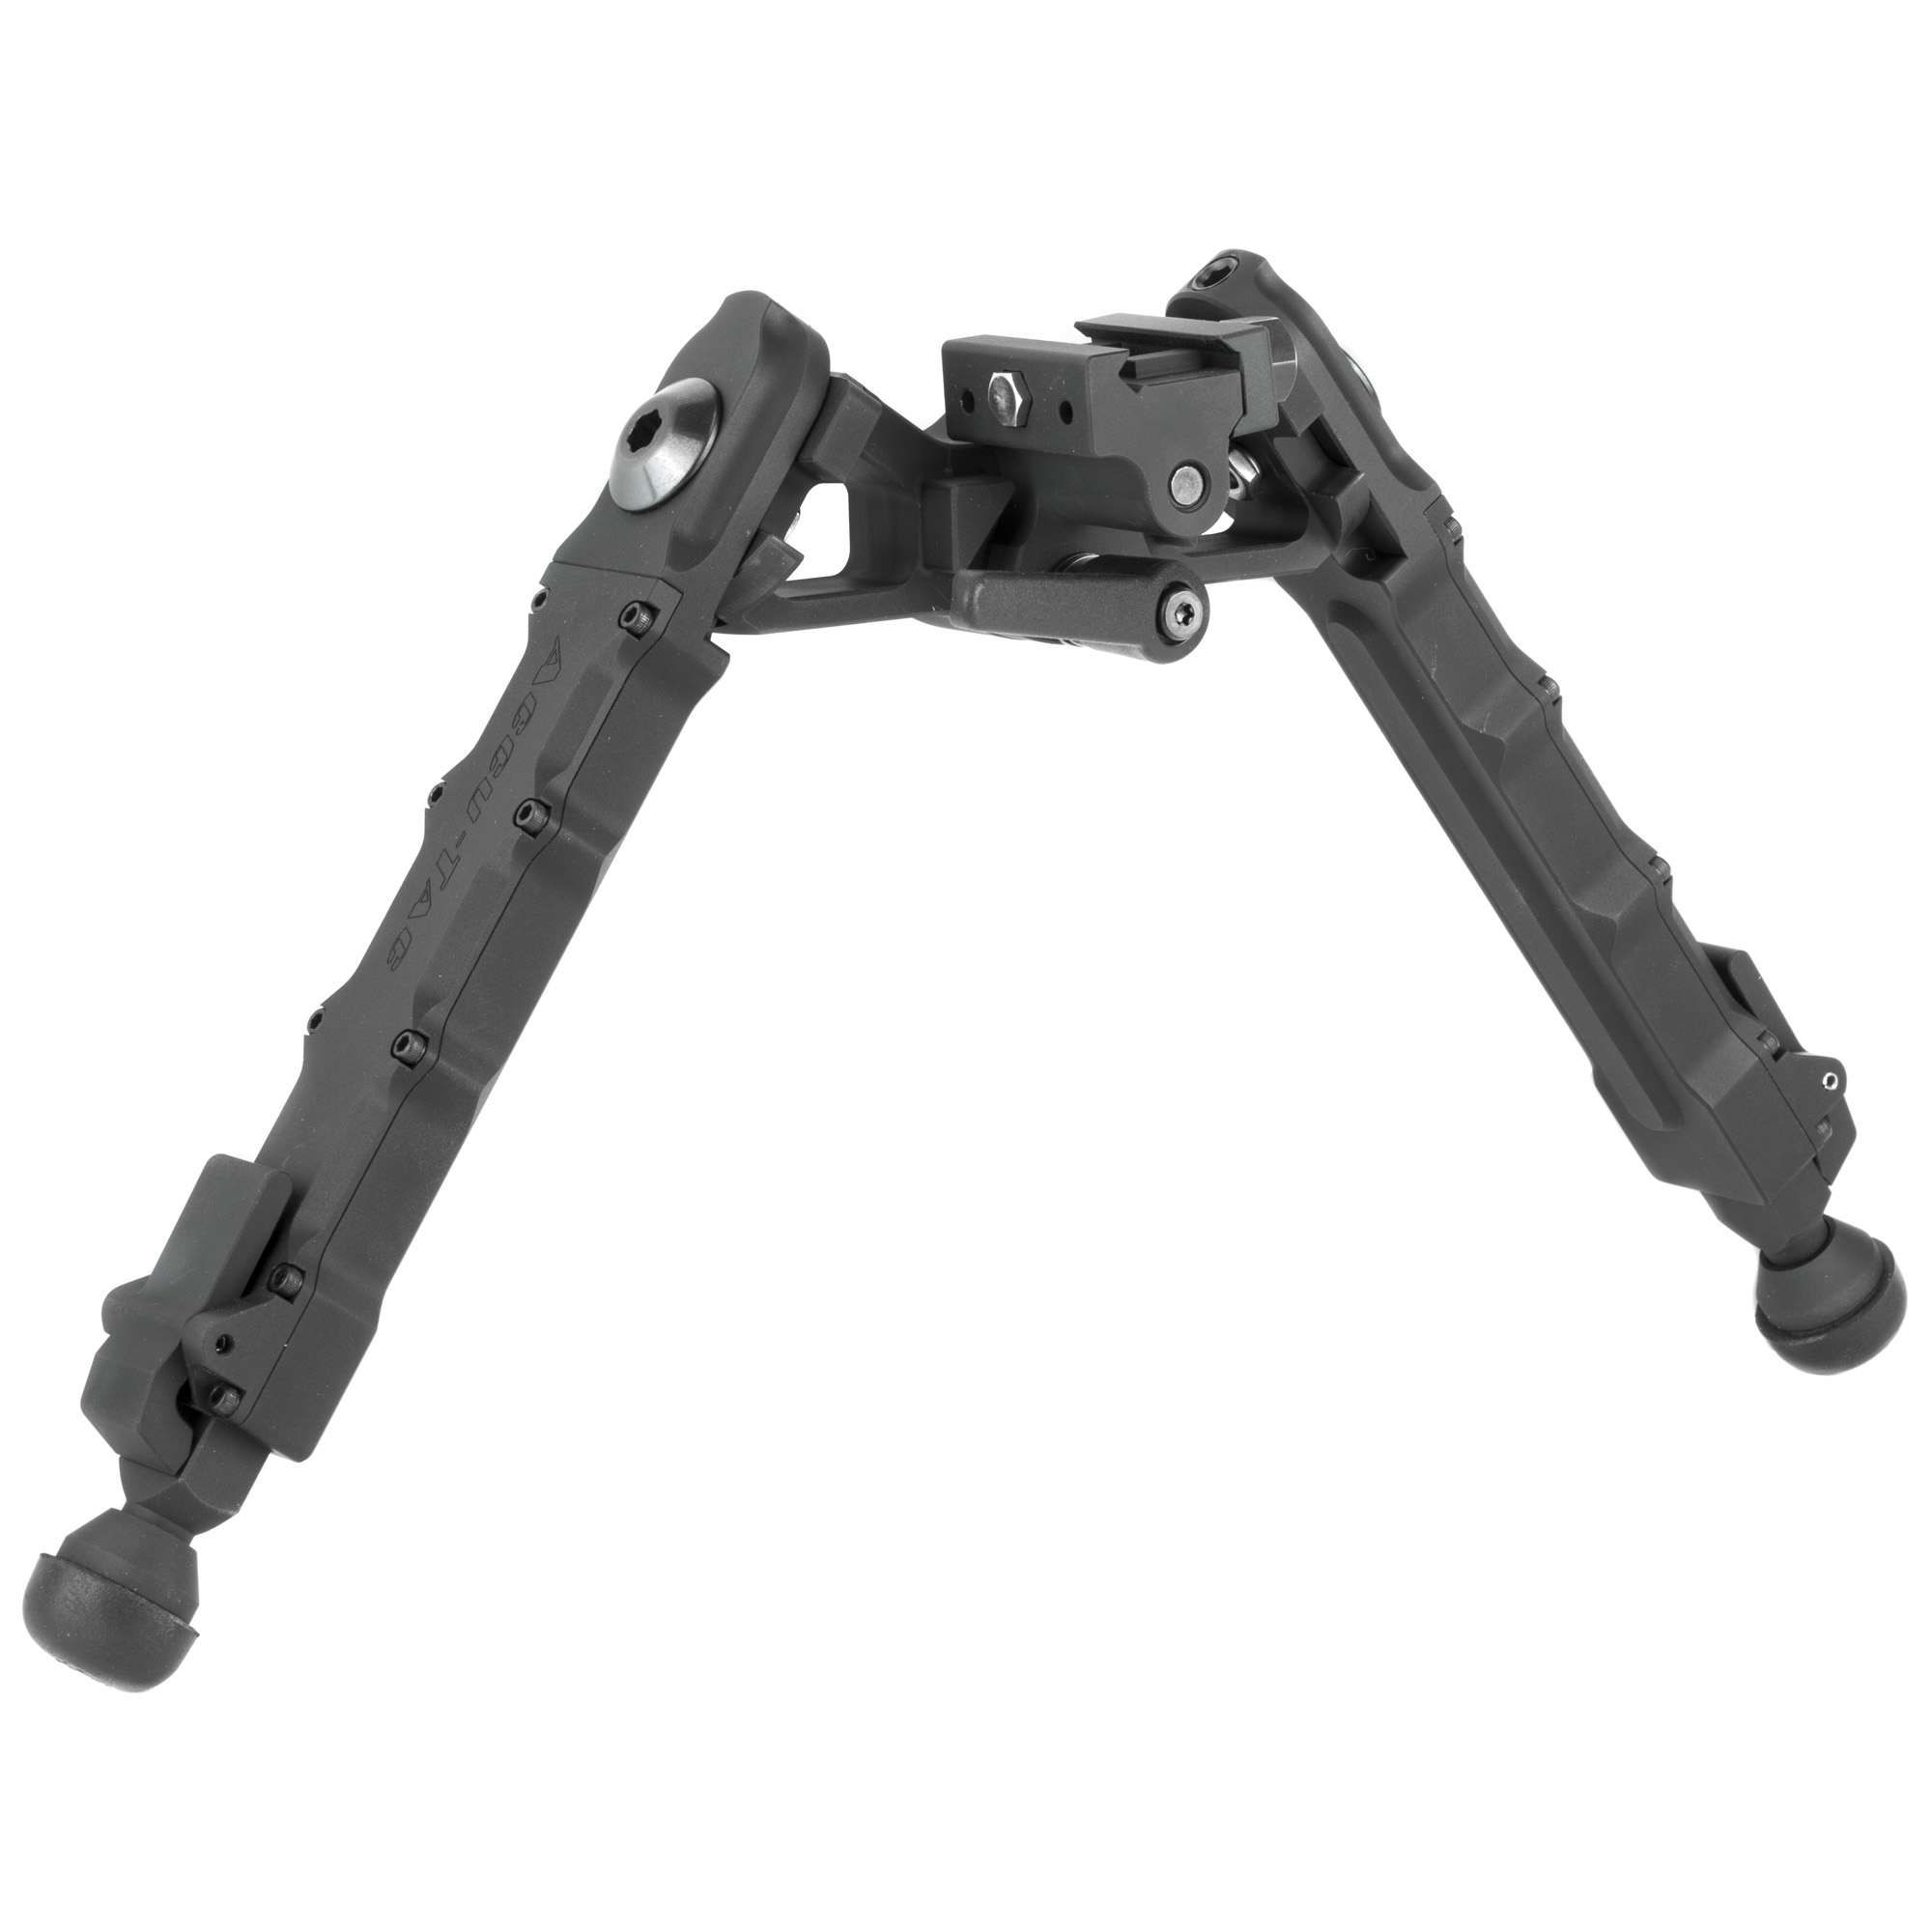 The HD-50 was designed for the 50 BMG caliber platforms. This is their Heavy Duty and most robust bipod. The arm lock lugs are larger to withstand the heavy recoil of a 50 BMG. This bipod has the ability to cant and has a very sturdy throw lever. The lever allows you to adjust the tension and enhance the ability to lock the canting motion into place. The legs can be extended into nine different height options. Its wider center hub delivers more stability and strength to support larger heavy rifles.